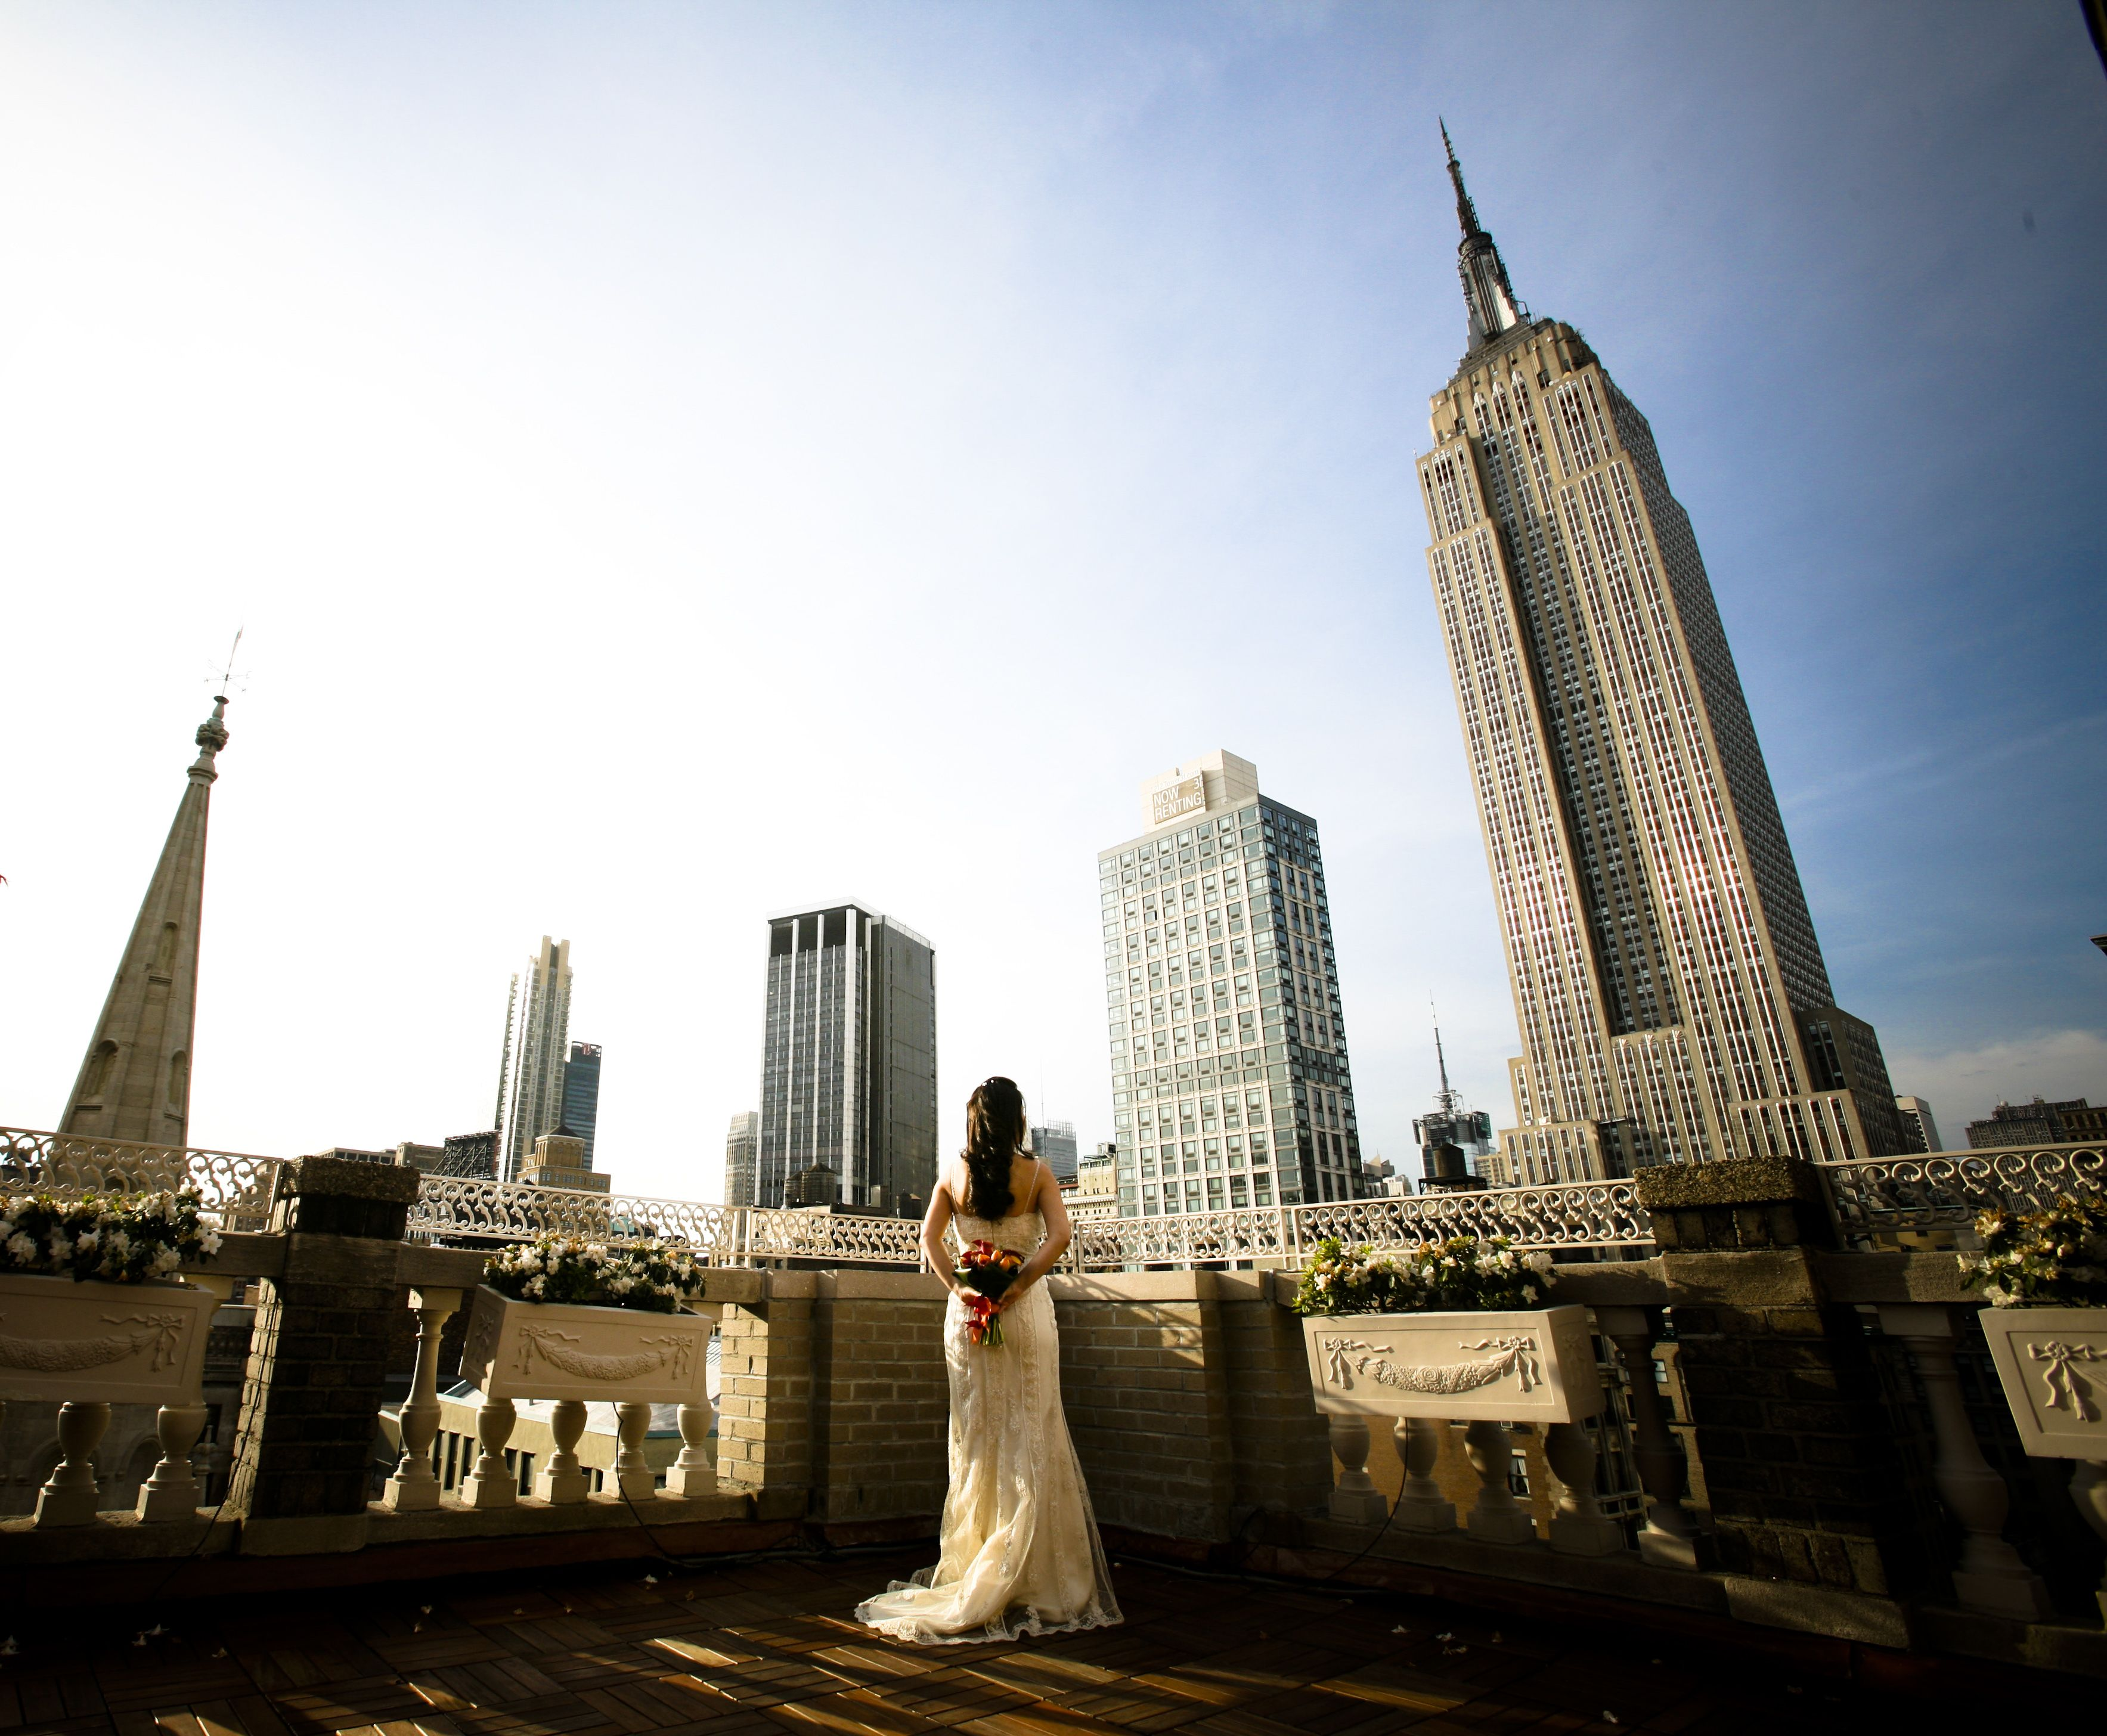 Rooftop wedding venues in nyc - View Of The Empire State Building From The Midtown Loft Terrace Venue In Nyc Rooftop Weddingevent